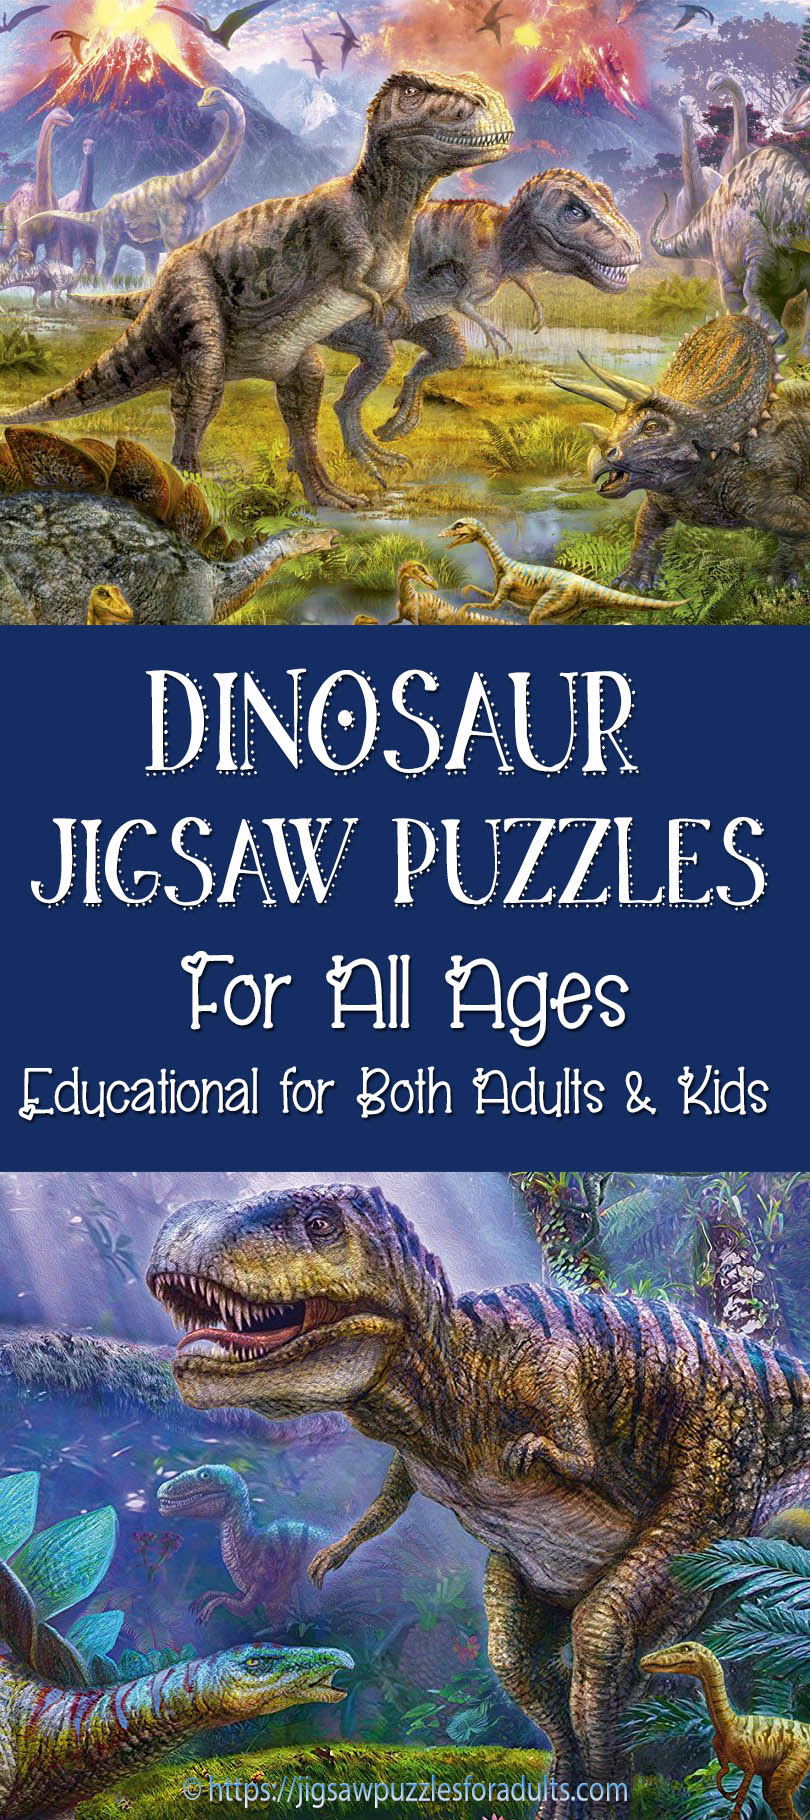 Jigsaw puzzles for adults retailers